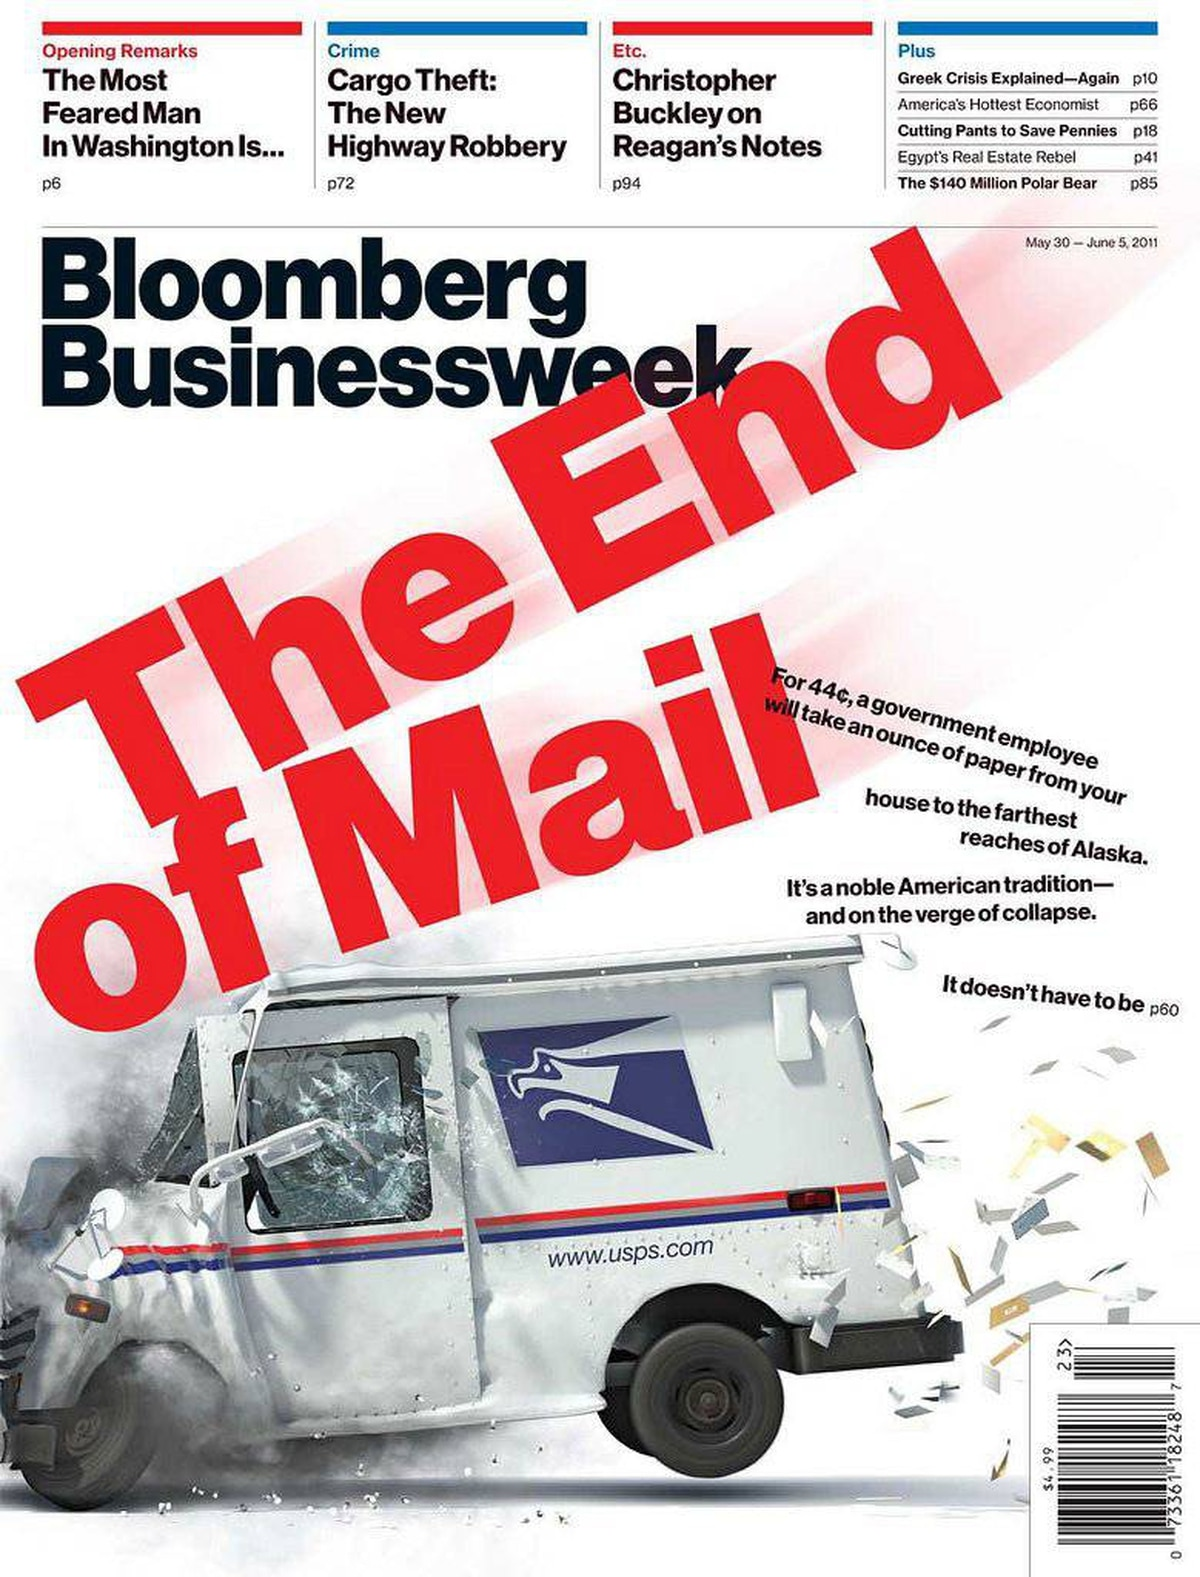 A Bloomberg Businessweek cover depicts a U.S. Mail vehicle slamming into a wall.